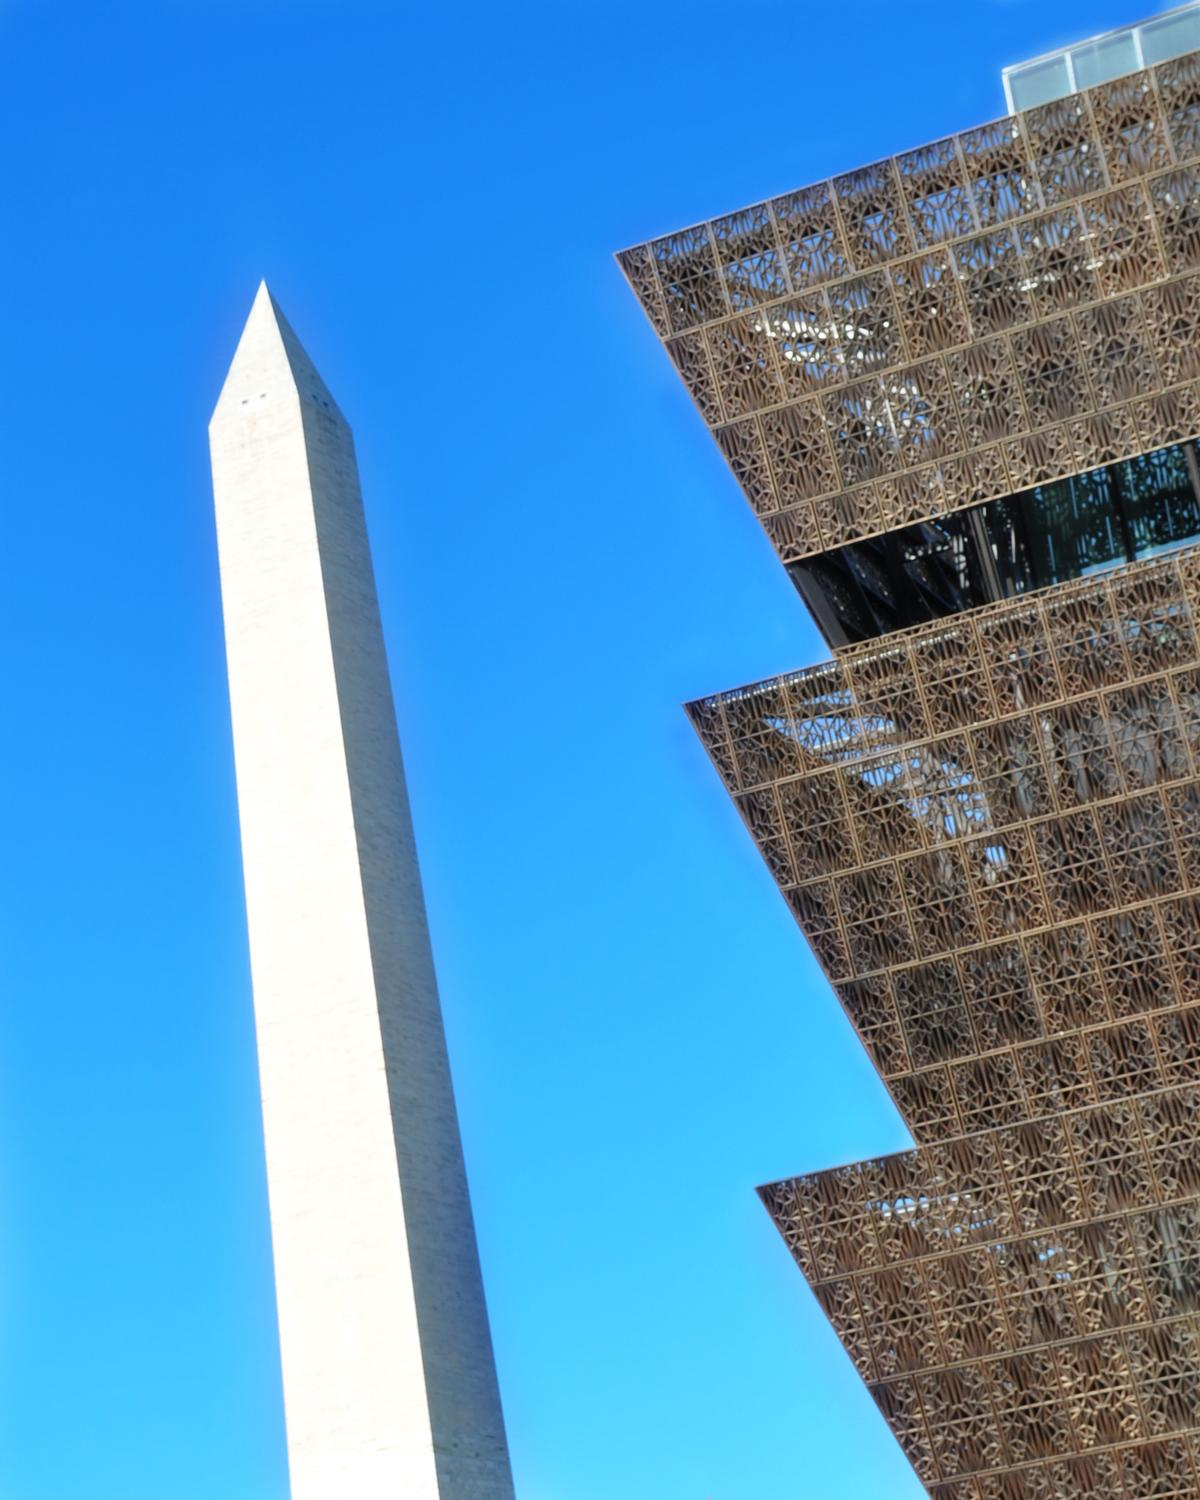 Visitors will be able to look out towards the Washington Monument and the White House